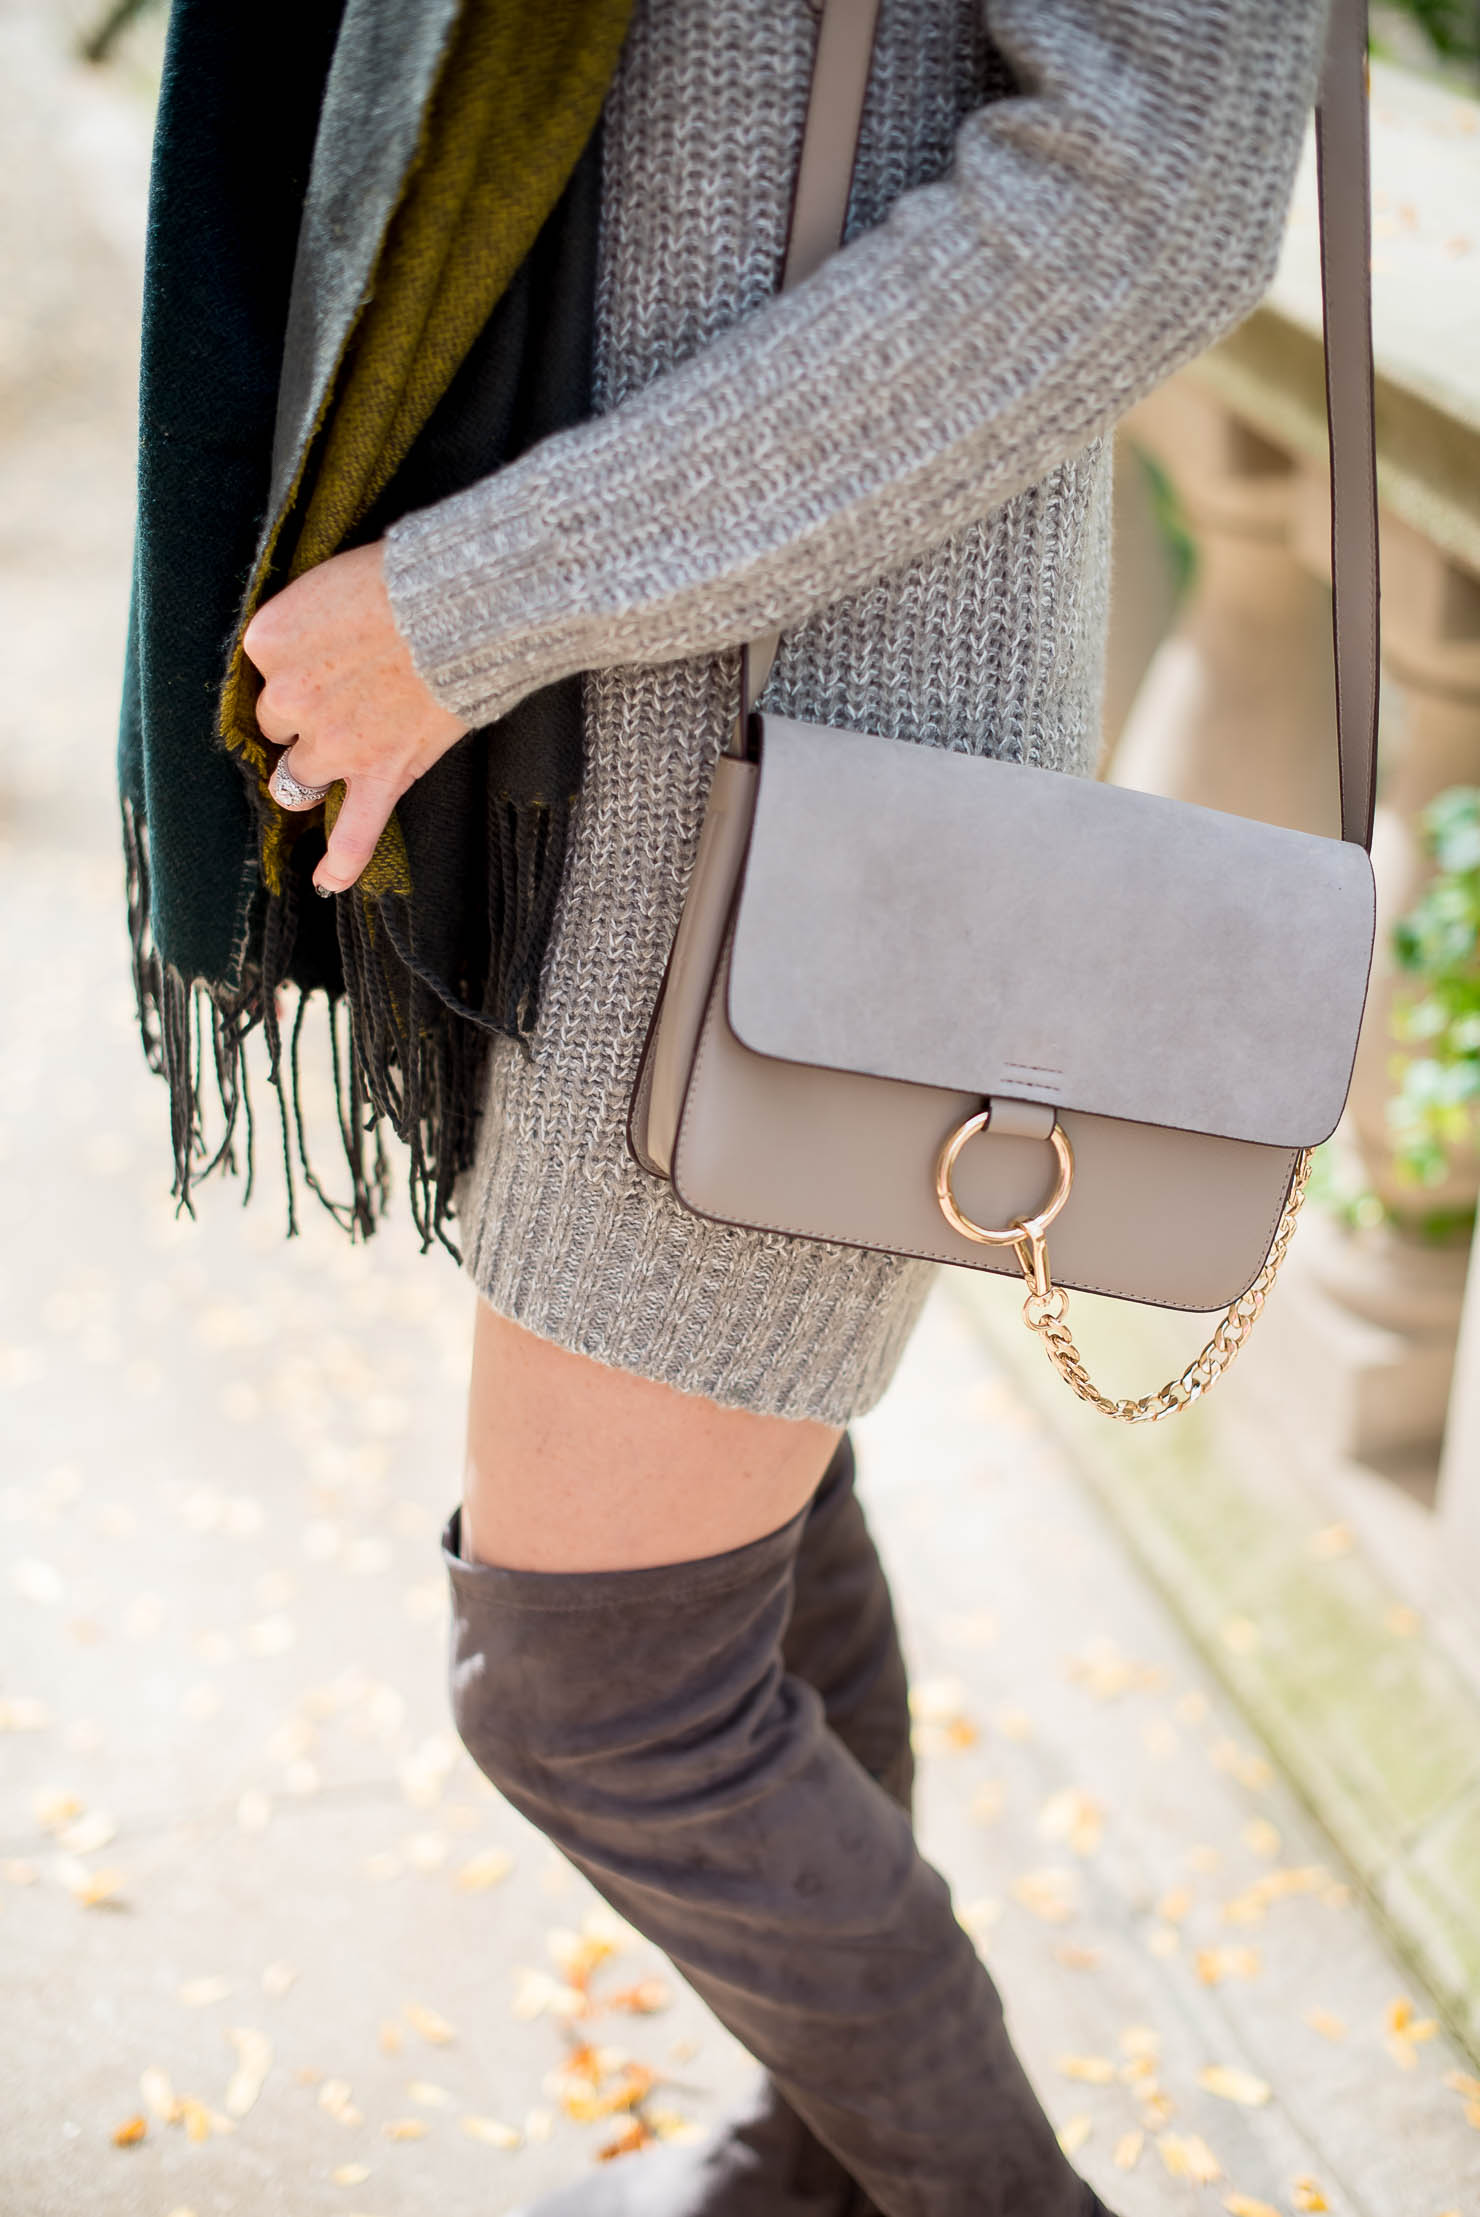 staying warm while looking stylish how to wear a sweater dress in the winter layering with secret silky hosiery open shoulder sweater dress